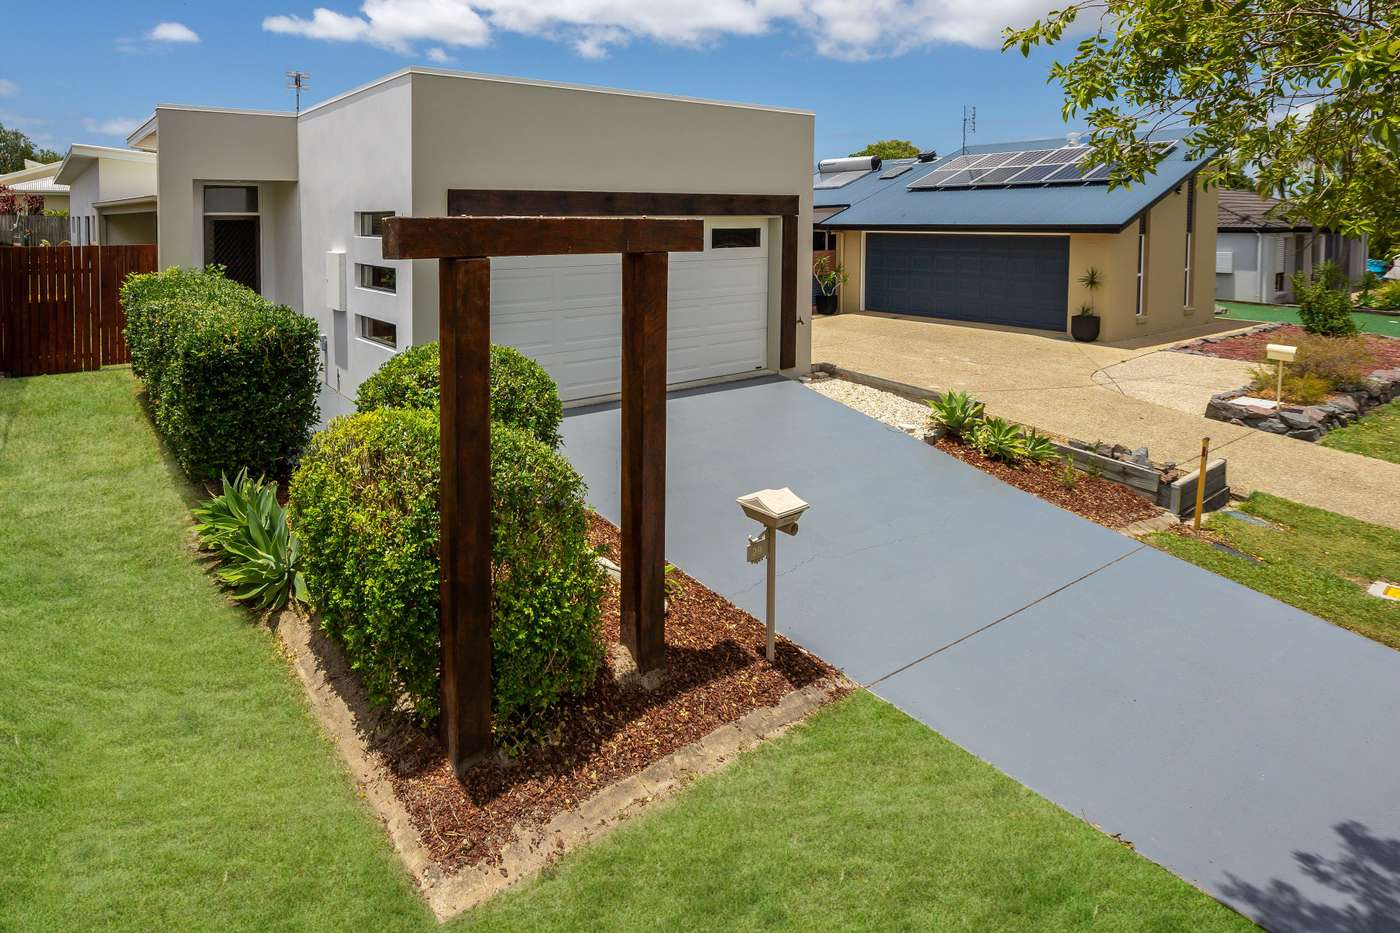 Main view of Homely house listing, 29 Cougal Circuit, Caloundra West, QLD 4551